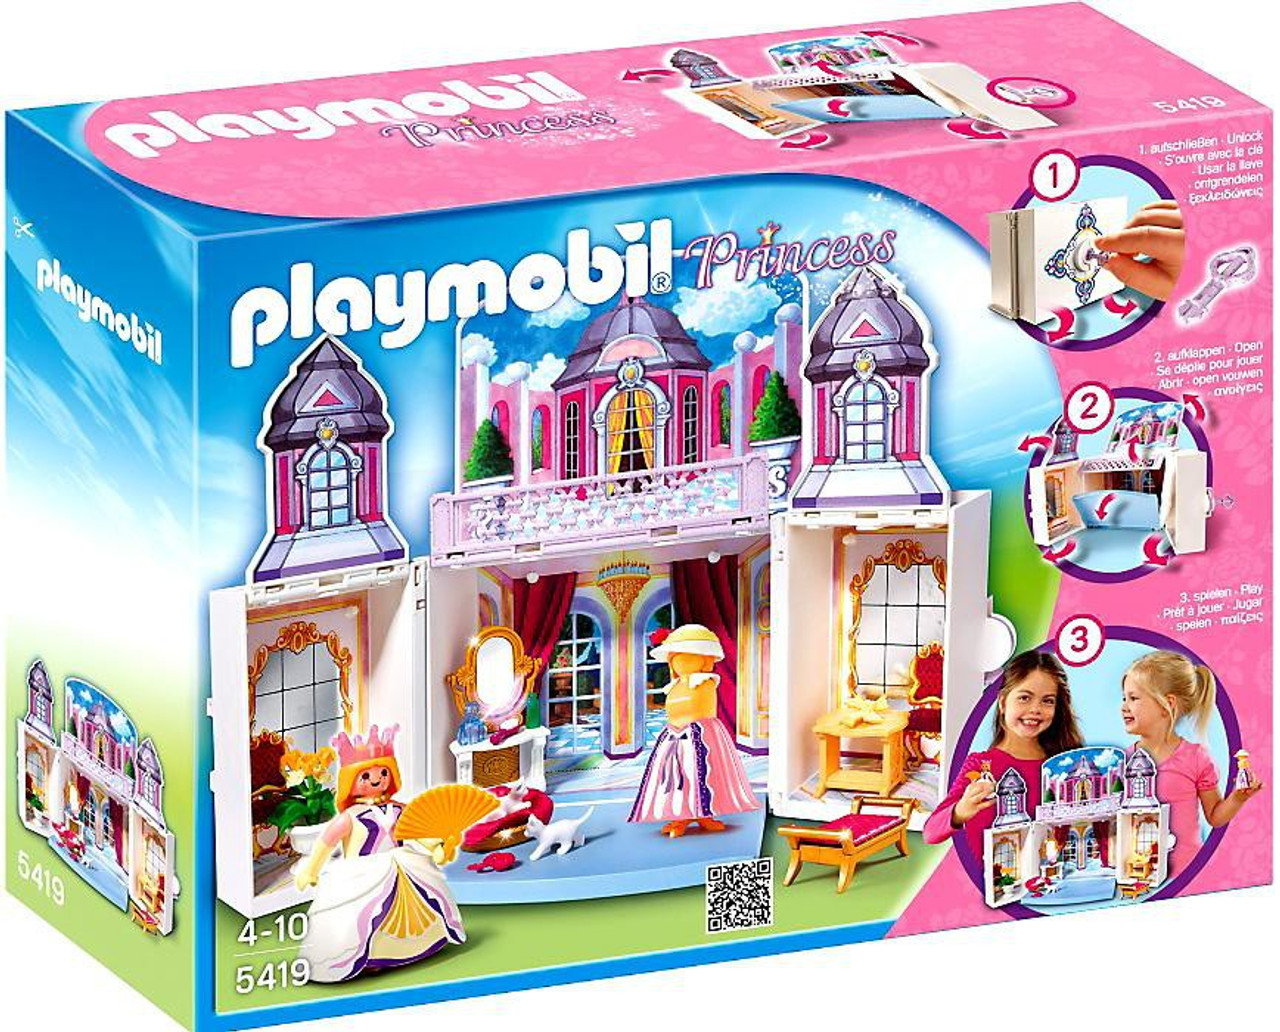 Playmobil My Secret Play Box Princess Castle Set 5419 Toywiz